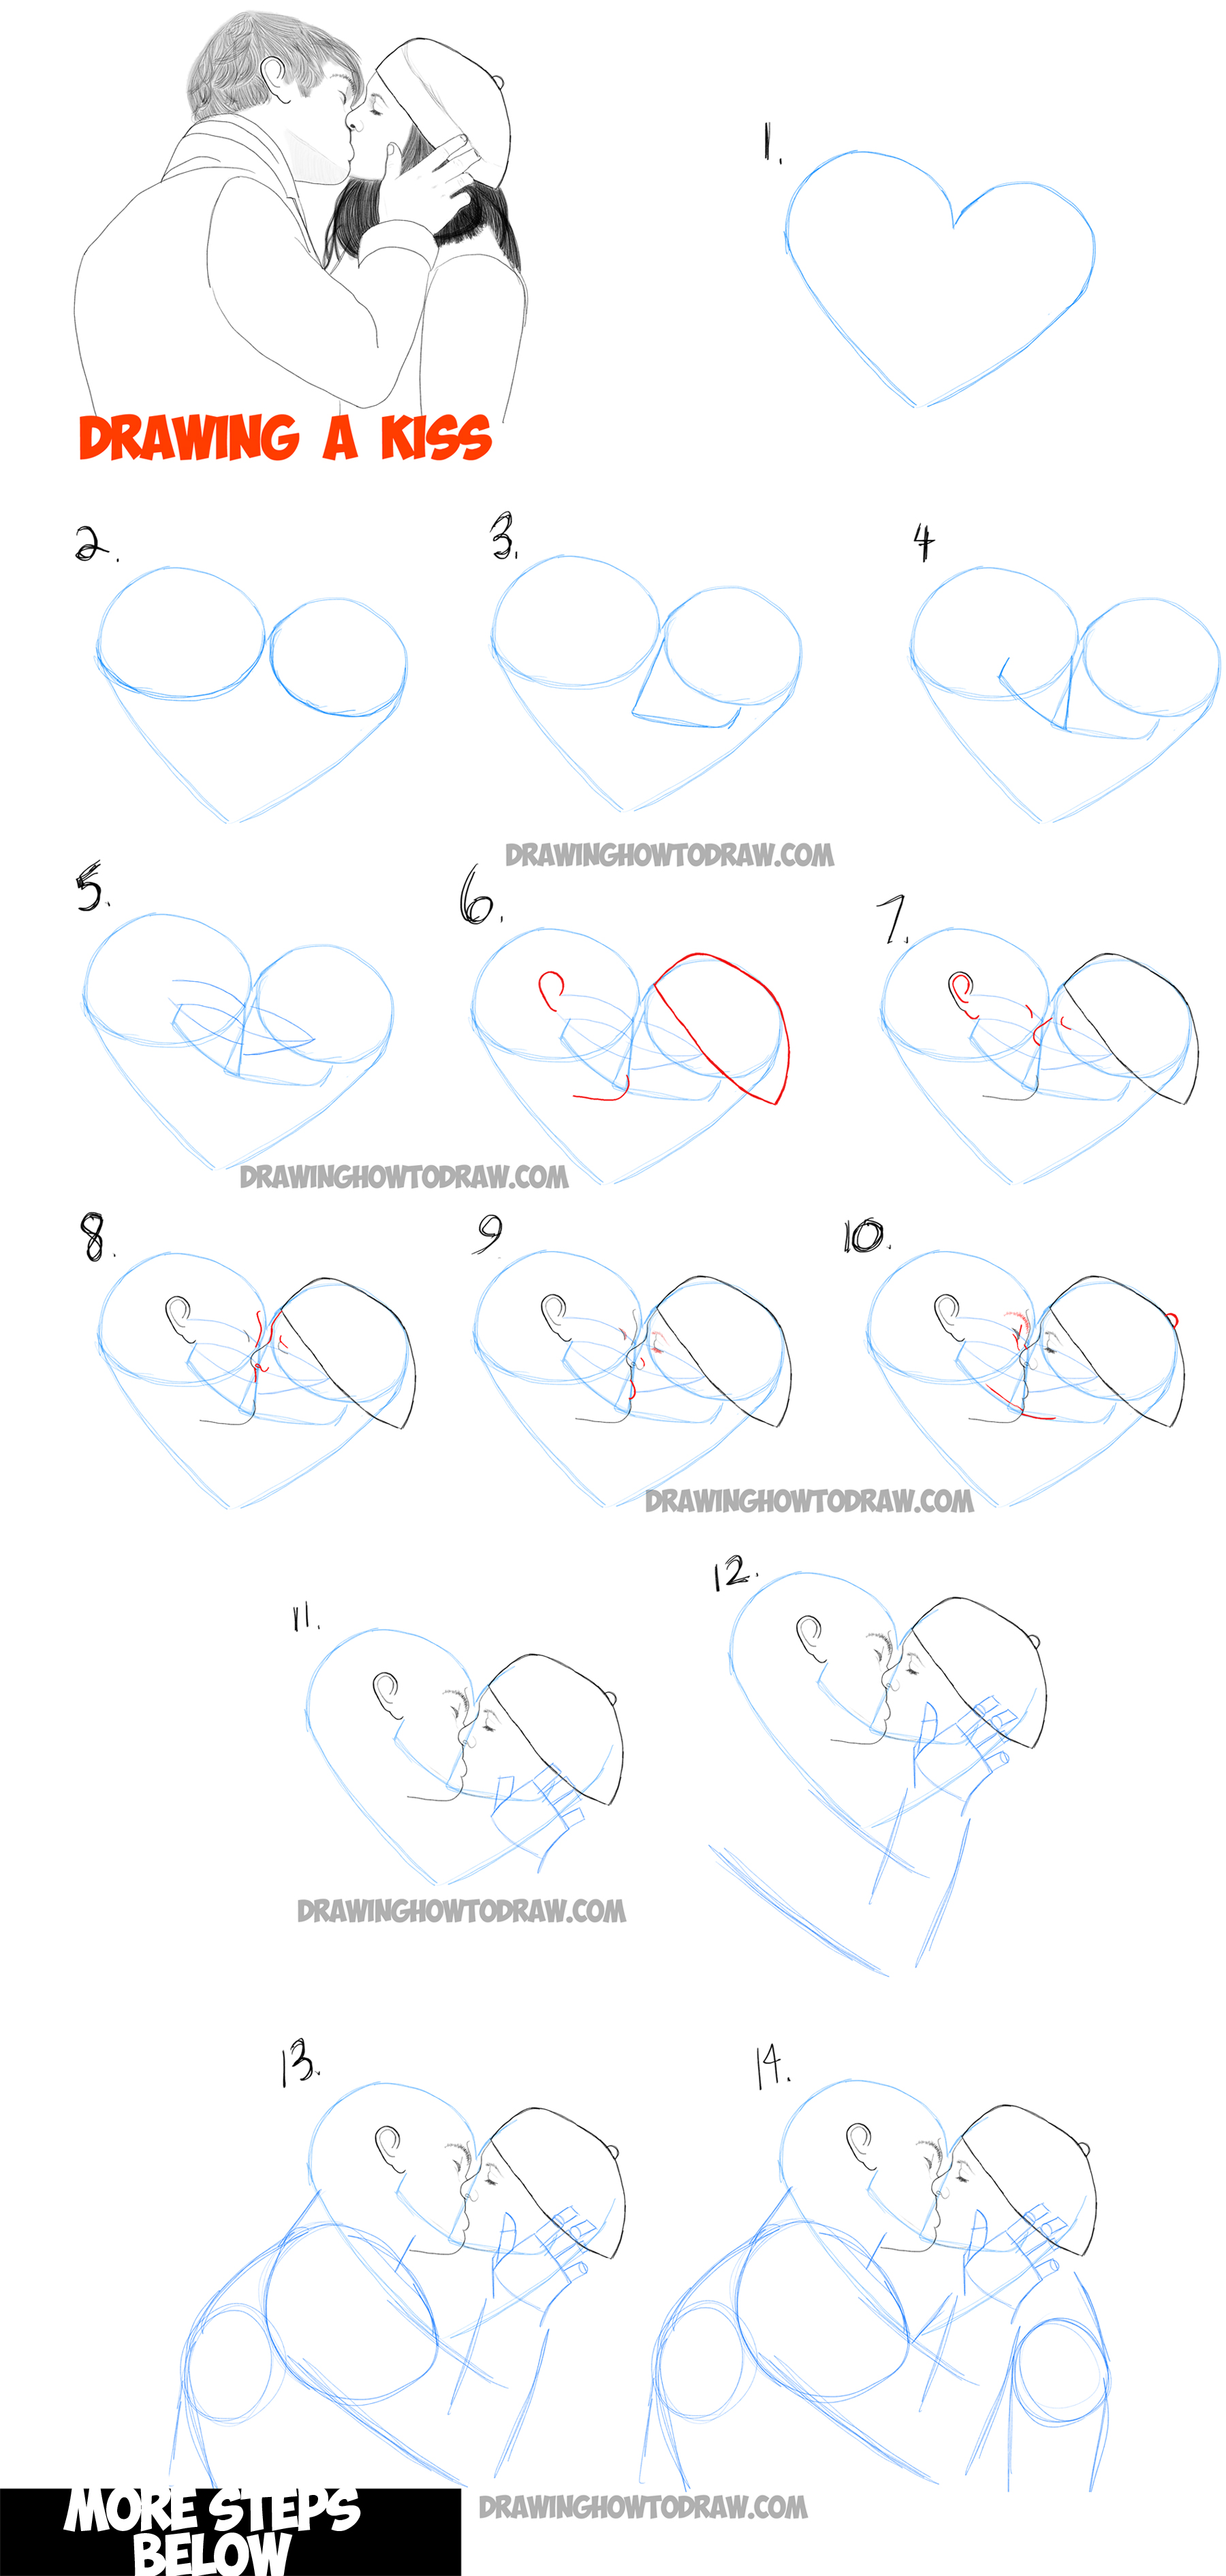 free download Drawing kisses. How to draw romantic.